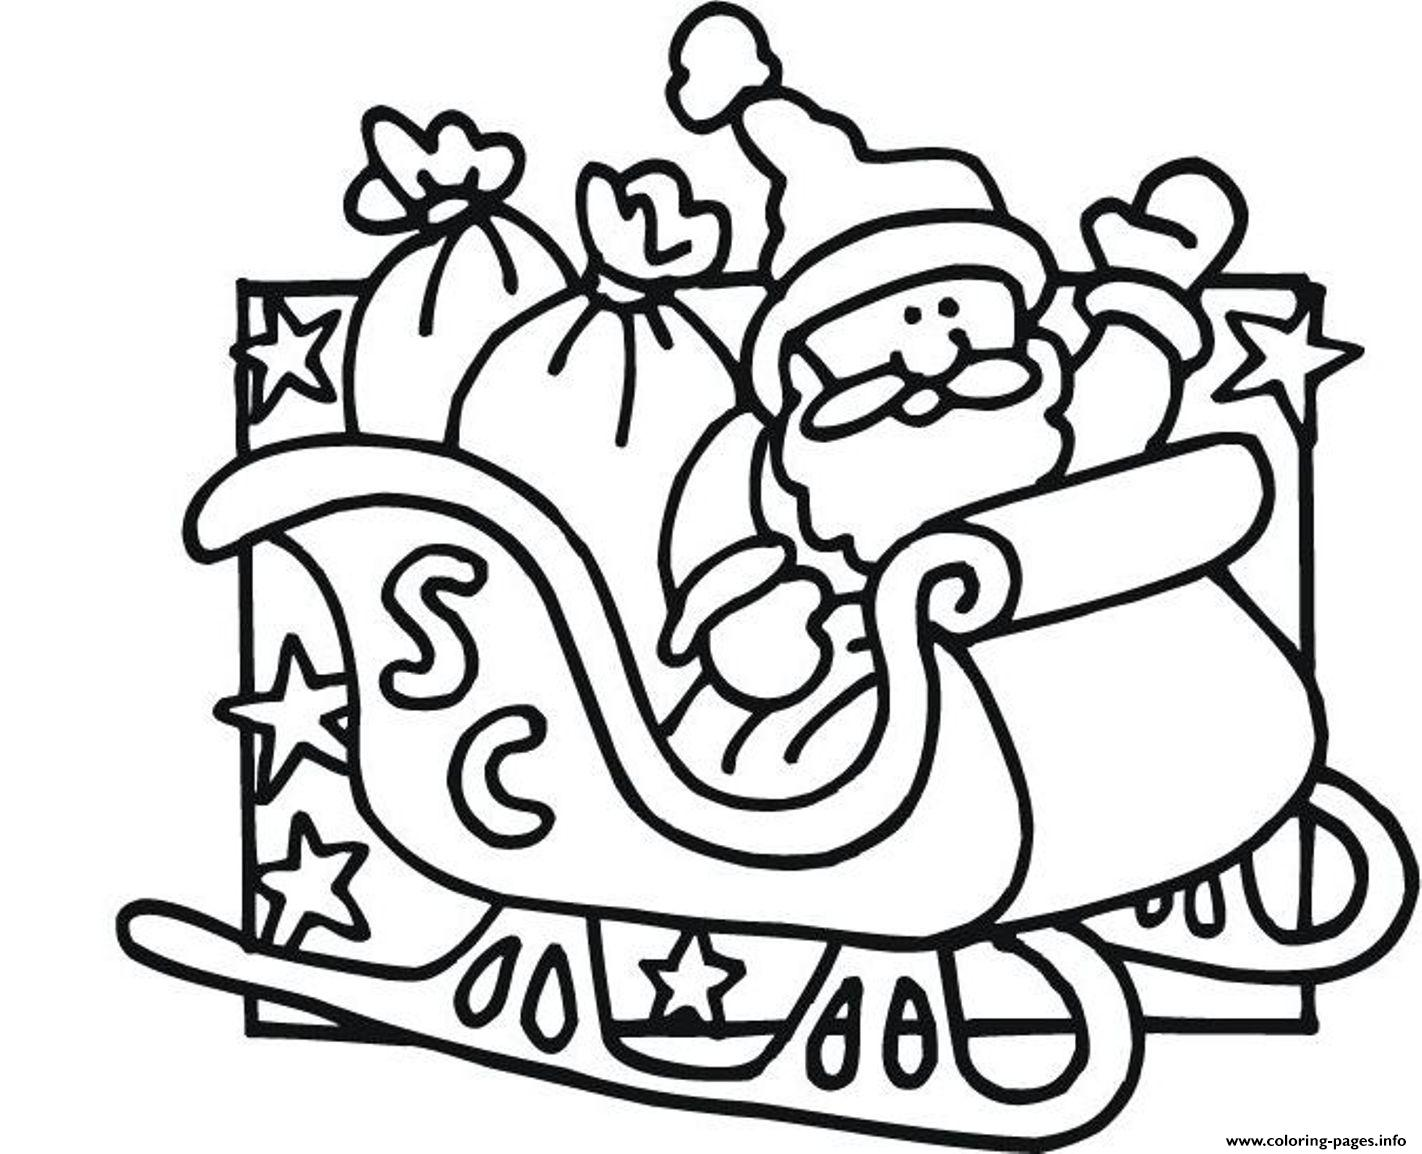 Santa Online Coloring Pages With Of Claus2174 Printable